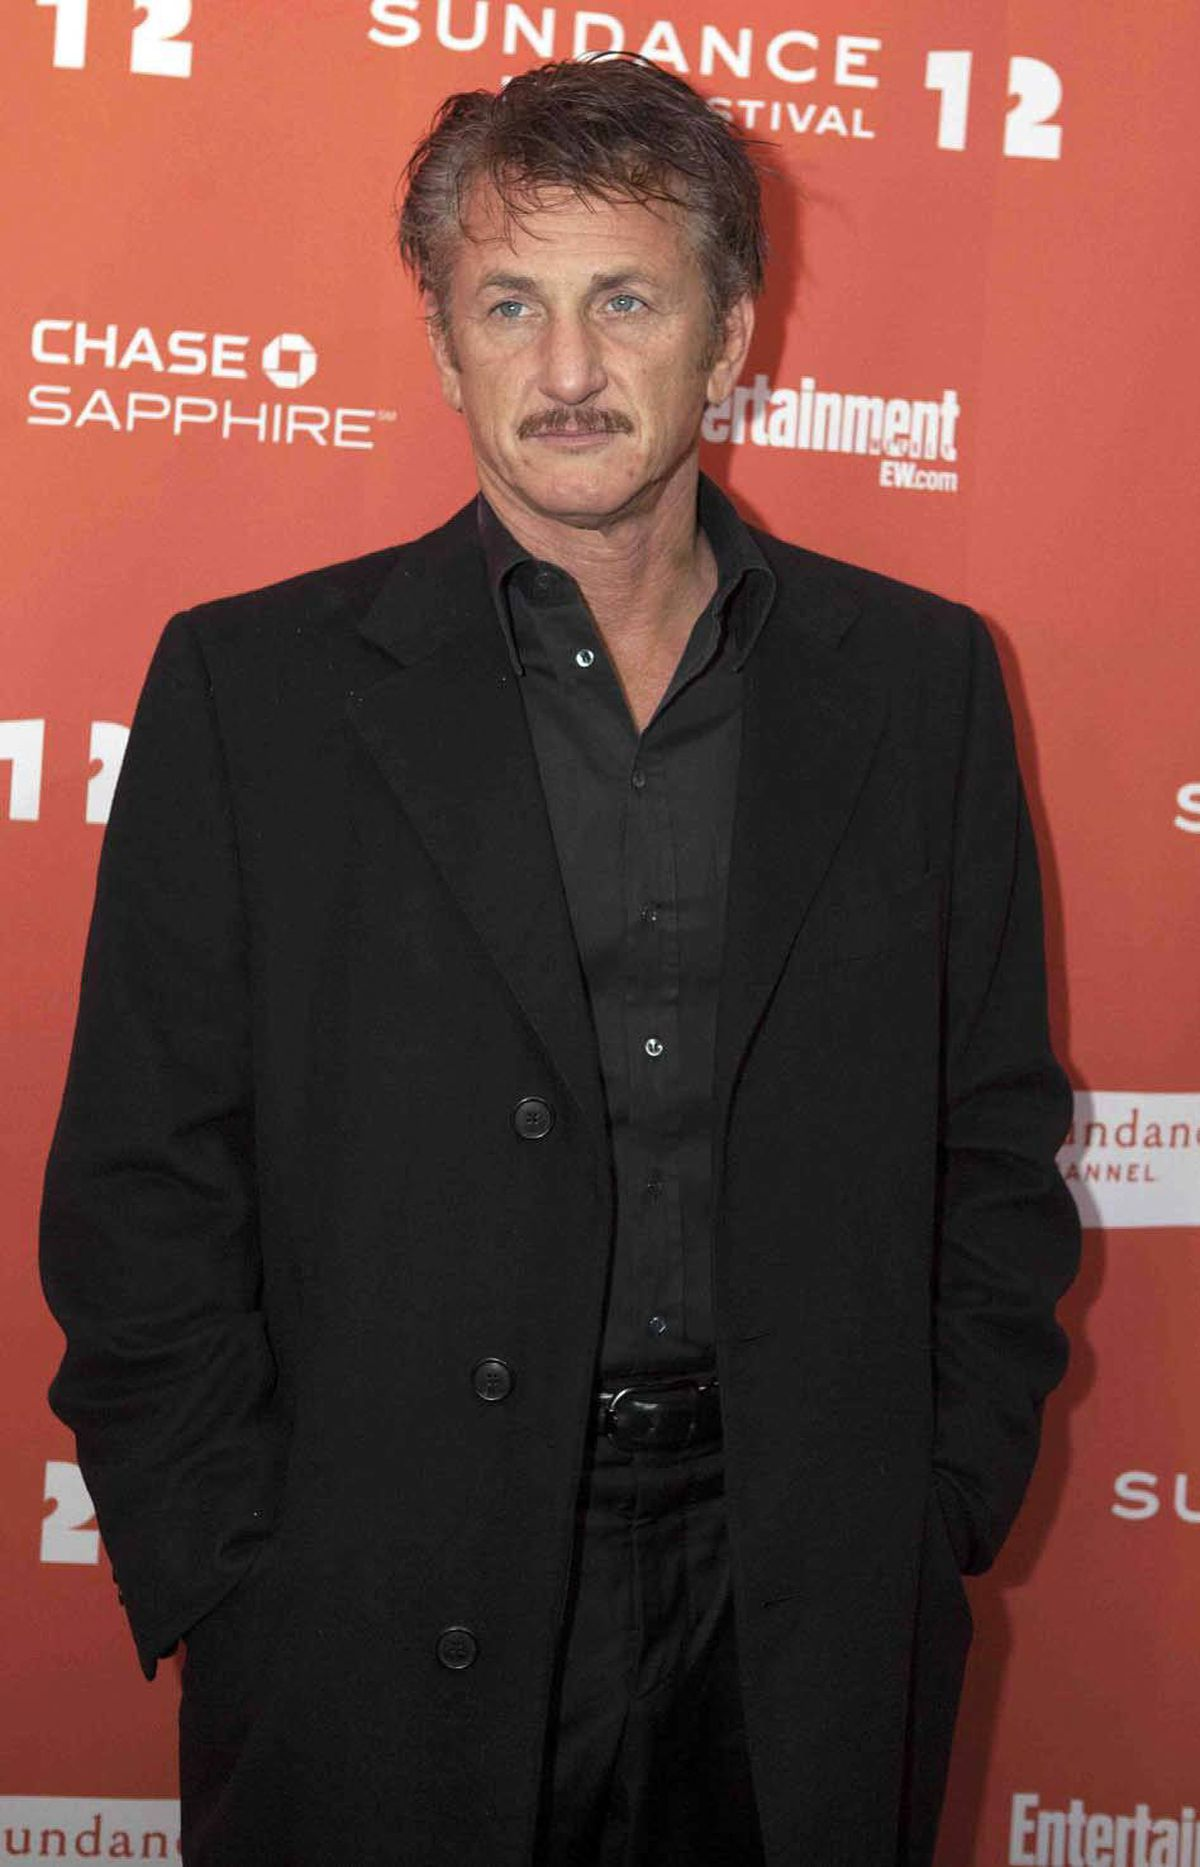 """Actor Sean Penn, who called celebrity a """"disease"""" and a """"herd commitment"""" at the Sundance Film Festival, graciously submits to having his photo taken on the red carpet at the Sundance premiere of his latest movie, which he really hopes you'll go see, but not, of course, because he's the """"star"""" but because you, too, detest celebrity and worship him for his anti-celebrity stance. He recently dated Scarlett Johansson and you didn't."""